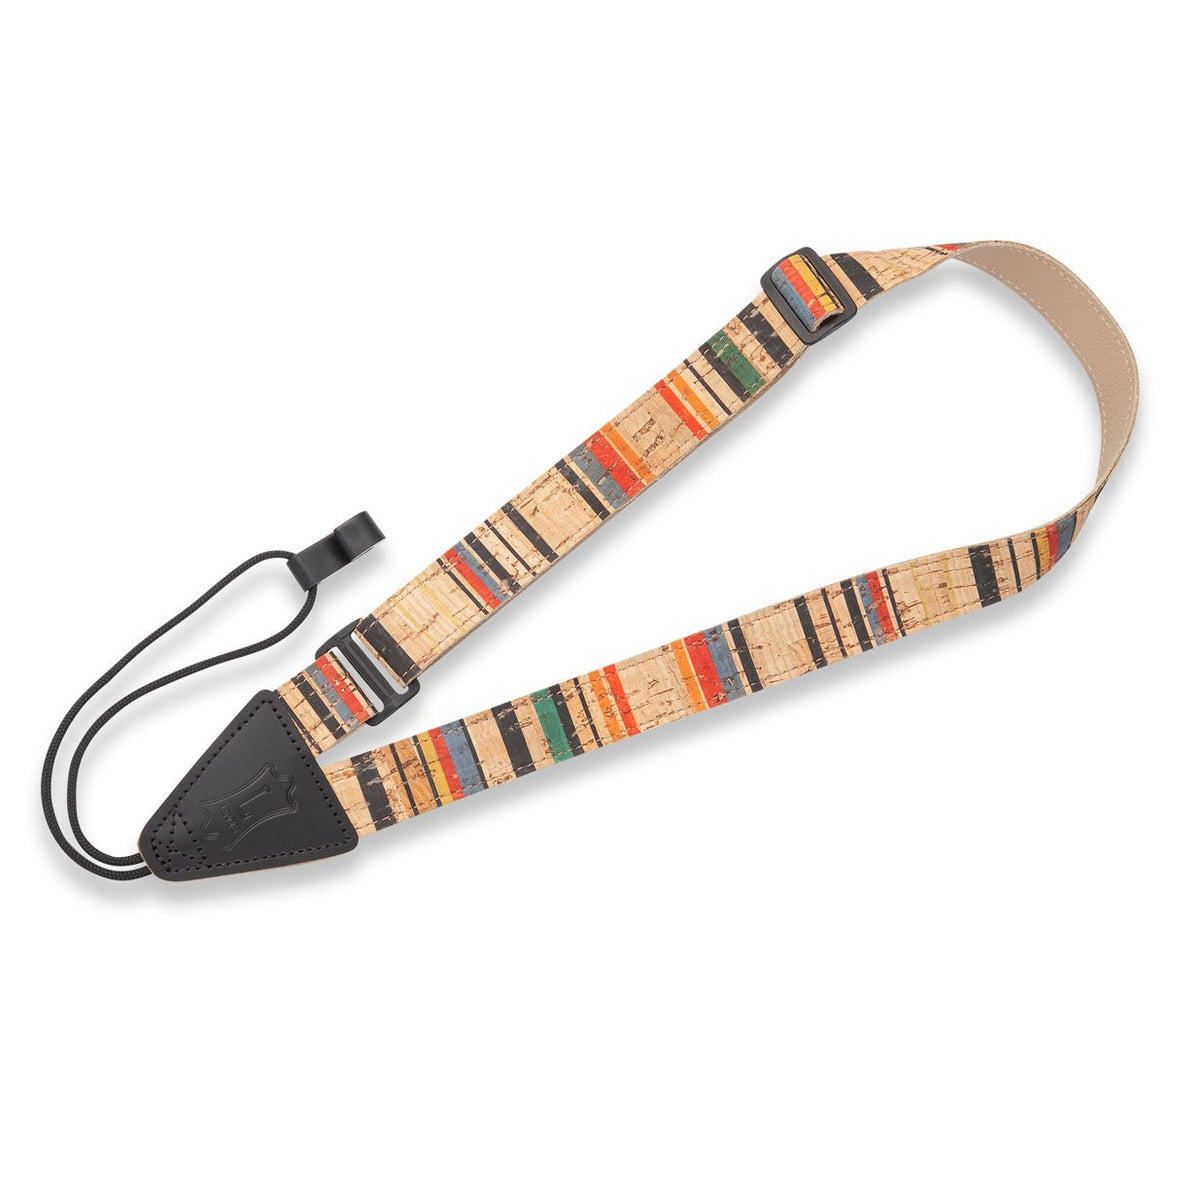 Levy's Stripe Soundhole Ukulele Strap MX23-001